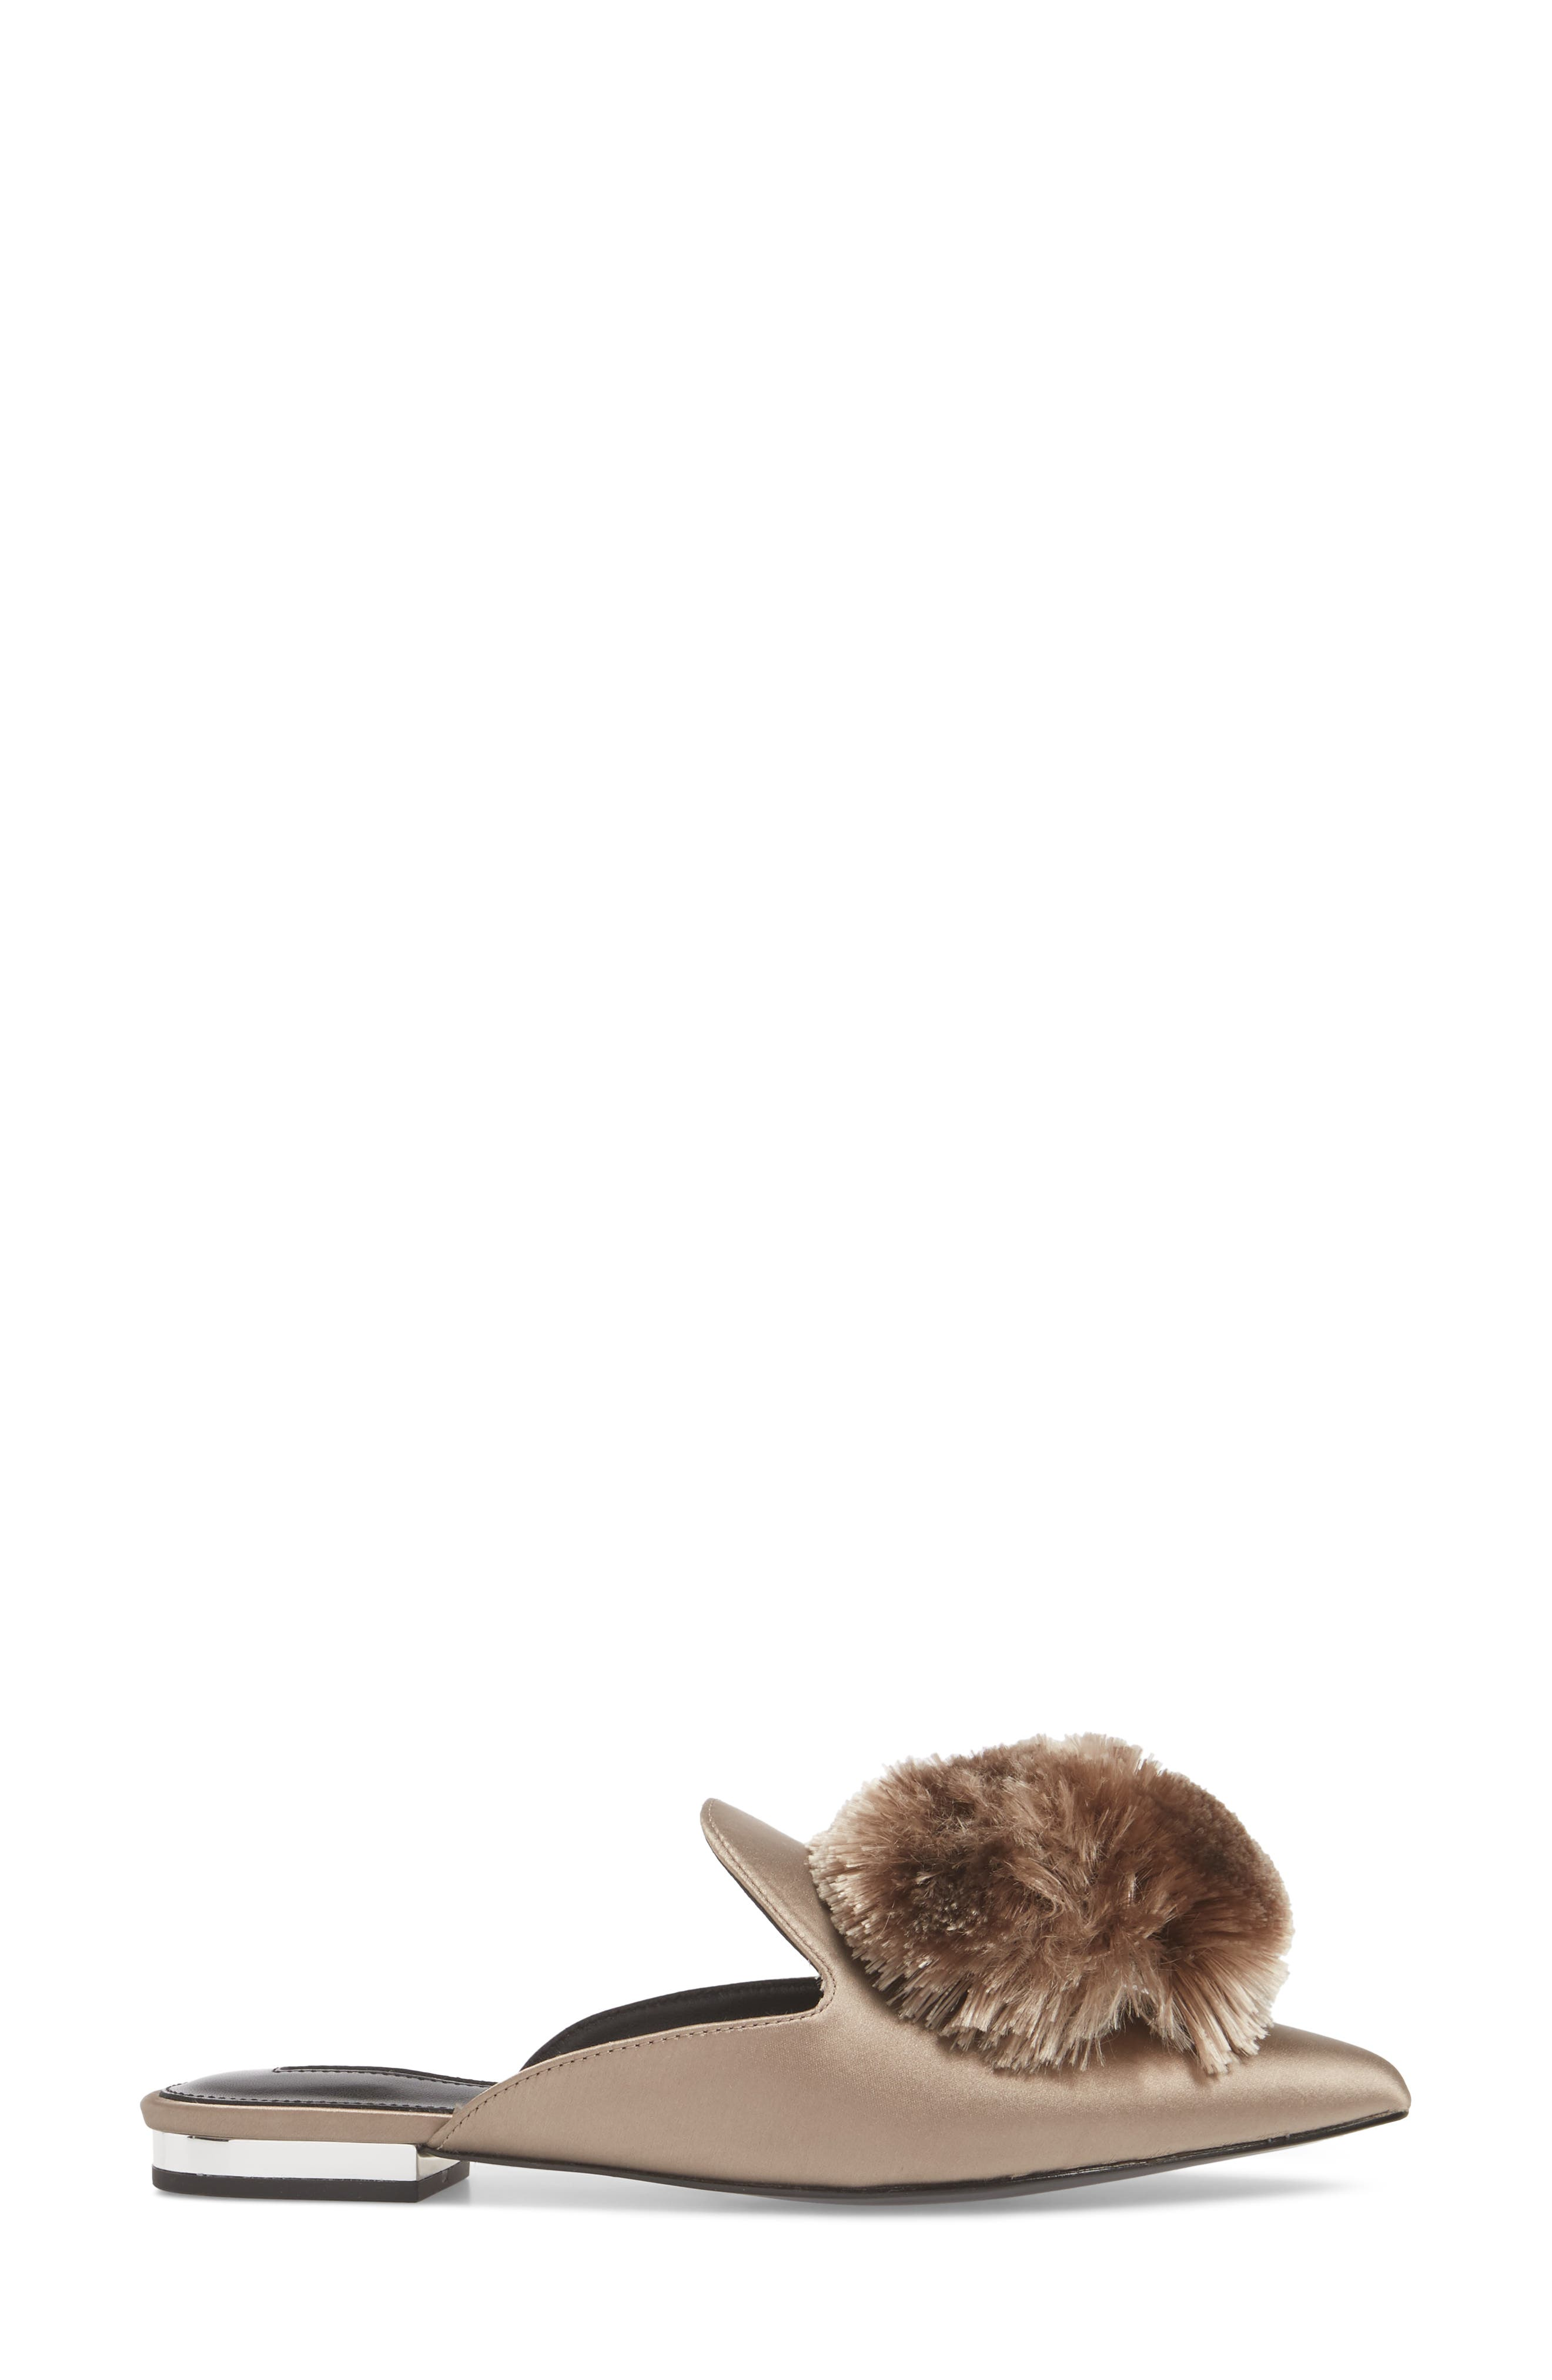 Wella Pompom Loafer Mule,                             Alternate thumbnail 3, color,                             TAUPE SATIN